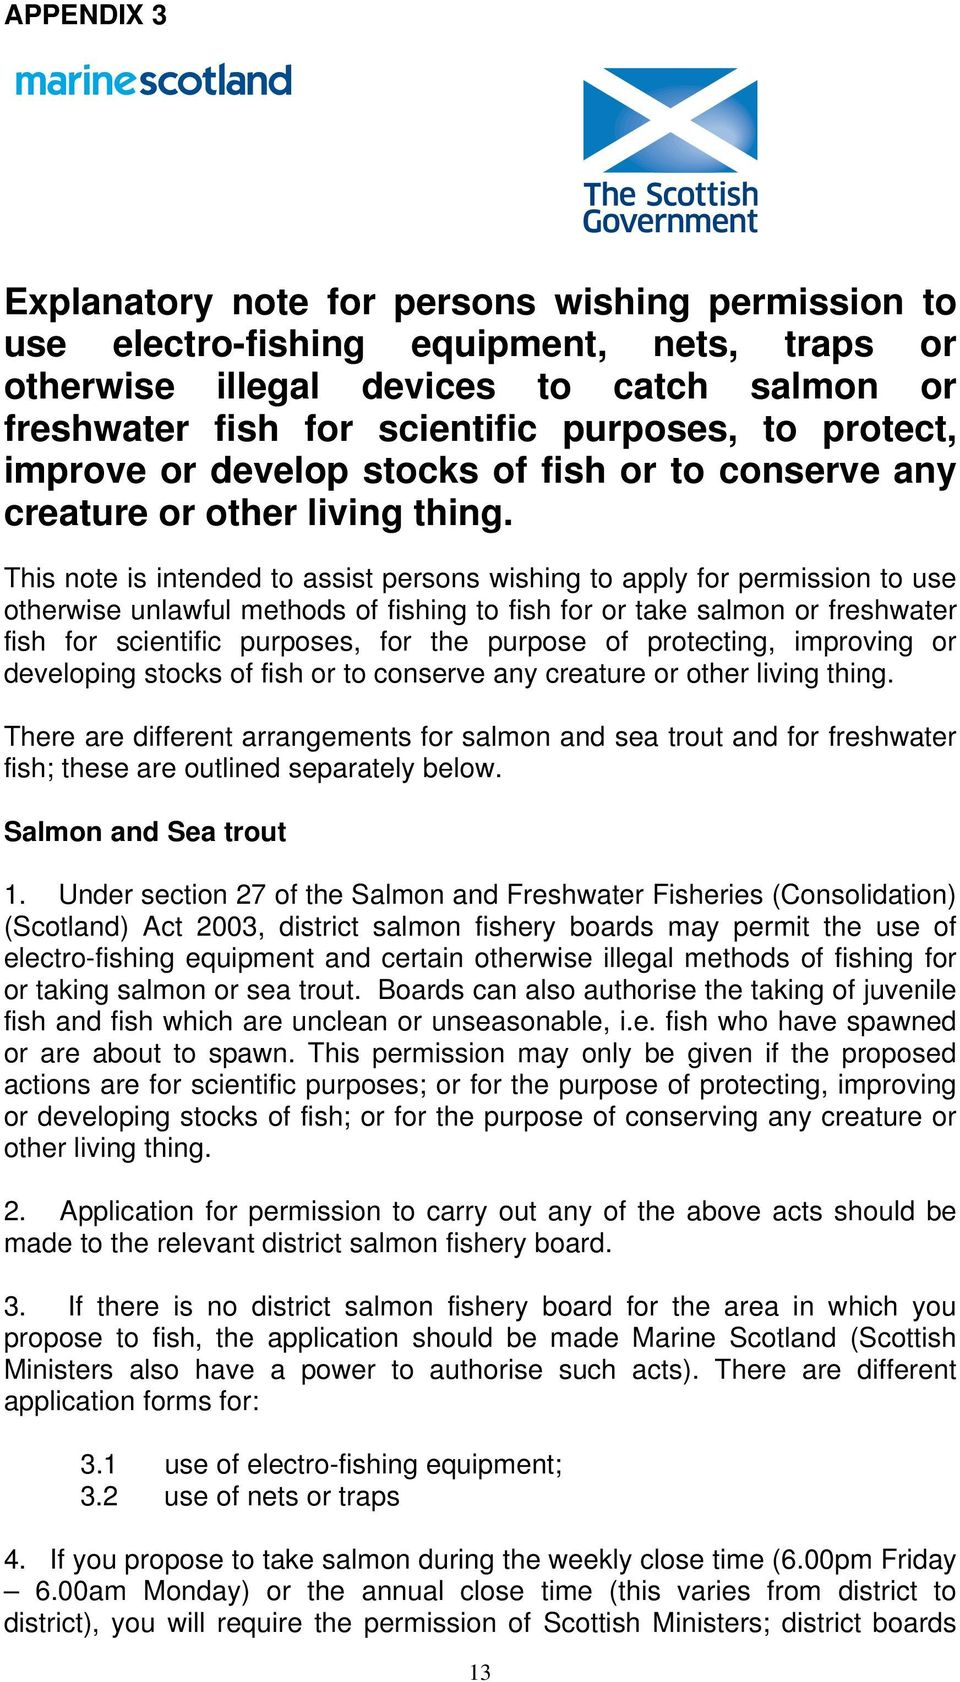 This note is intended to assist persons wishing to apply for permission to use otherwise unlawful methods of fishing to fish for or take salmon or freshwater fish for scientific purposes, for the